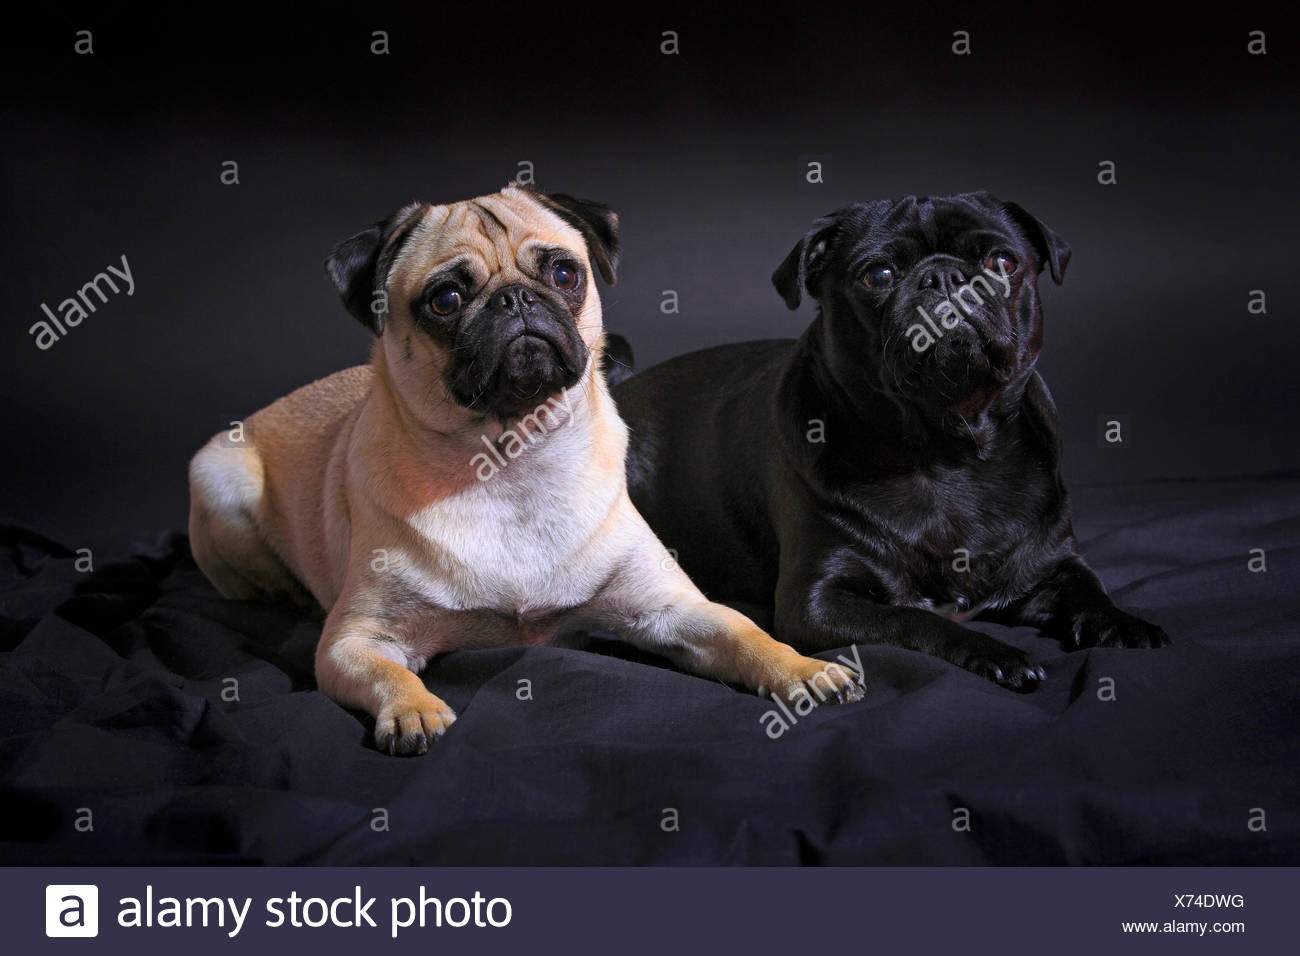 Pug (Canis lupus f. familiaris), black pug and fawn pug lying together on a black blanket - Stock Image